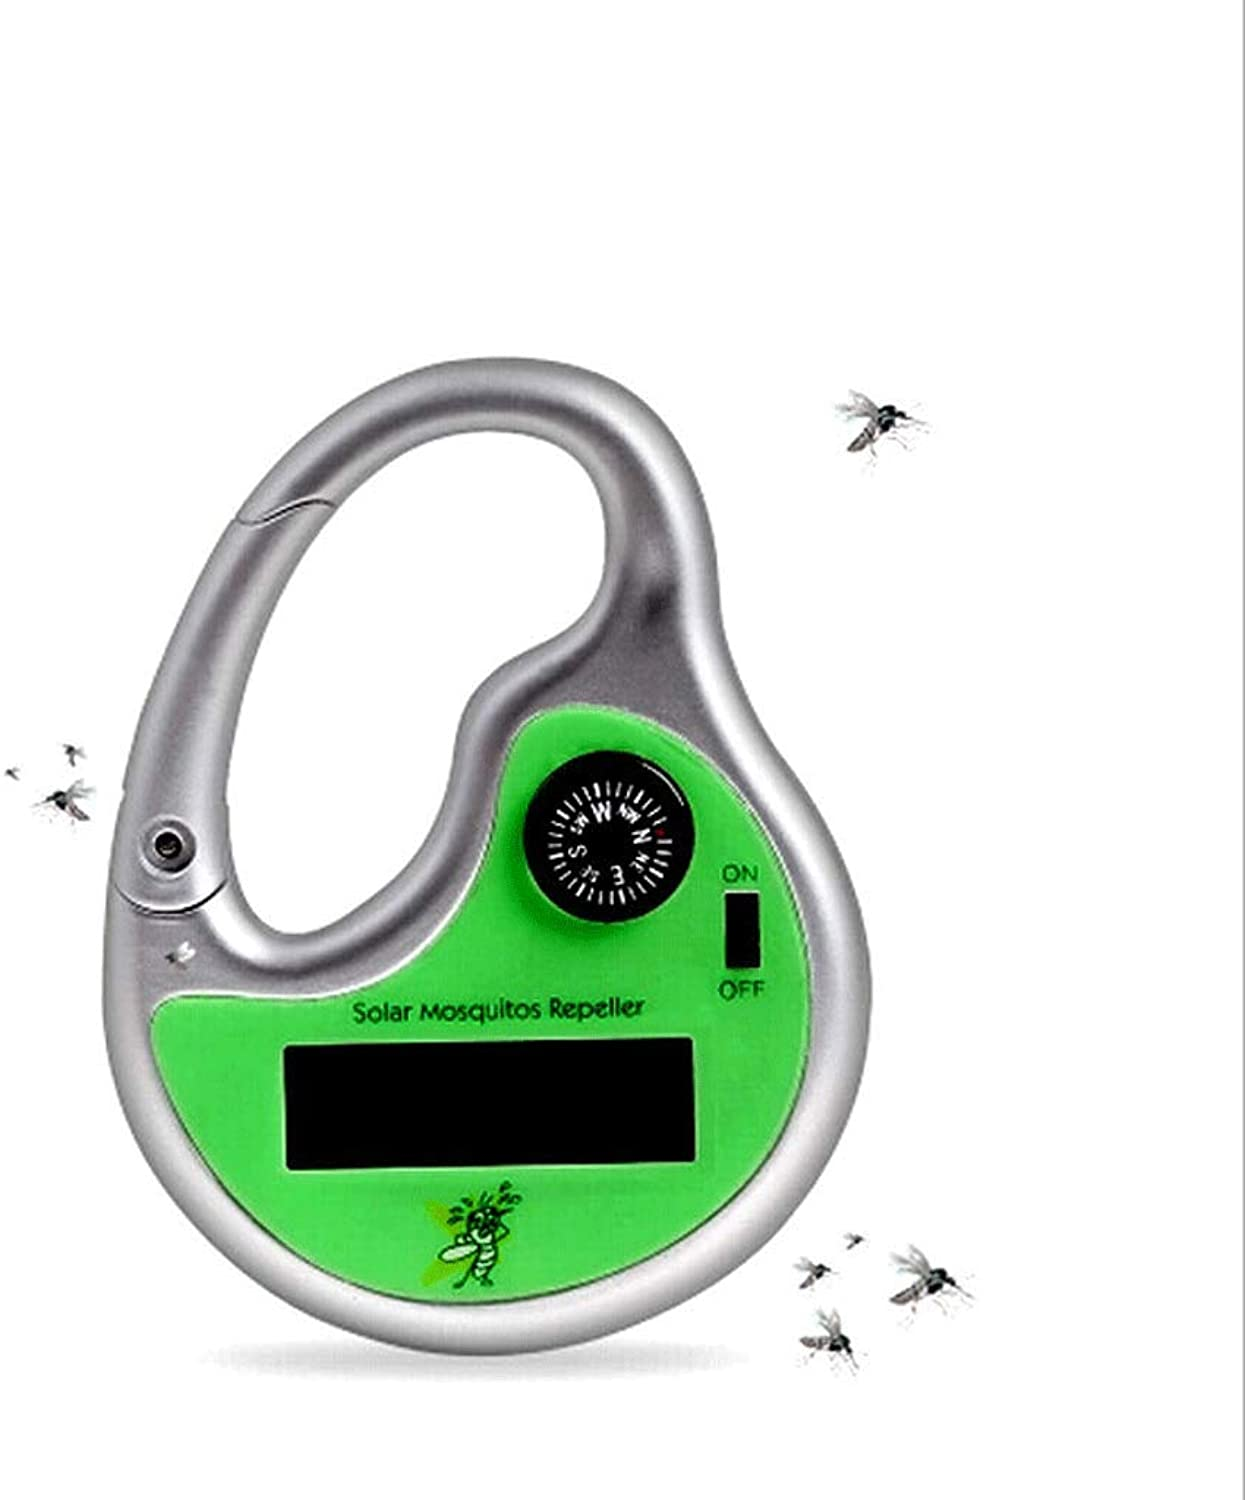 Outdoor Dedicated Solar Charging Ultrasonic Compass Mosquito Repellent Portable Repeller